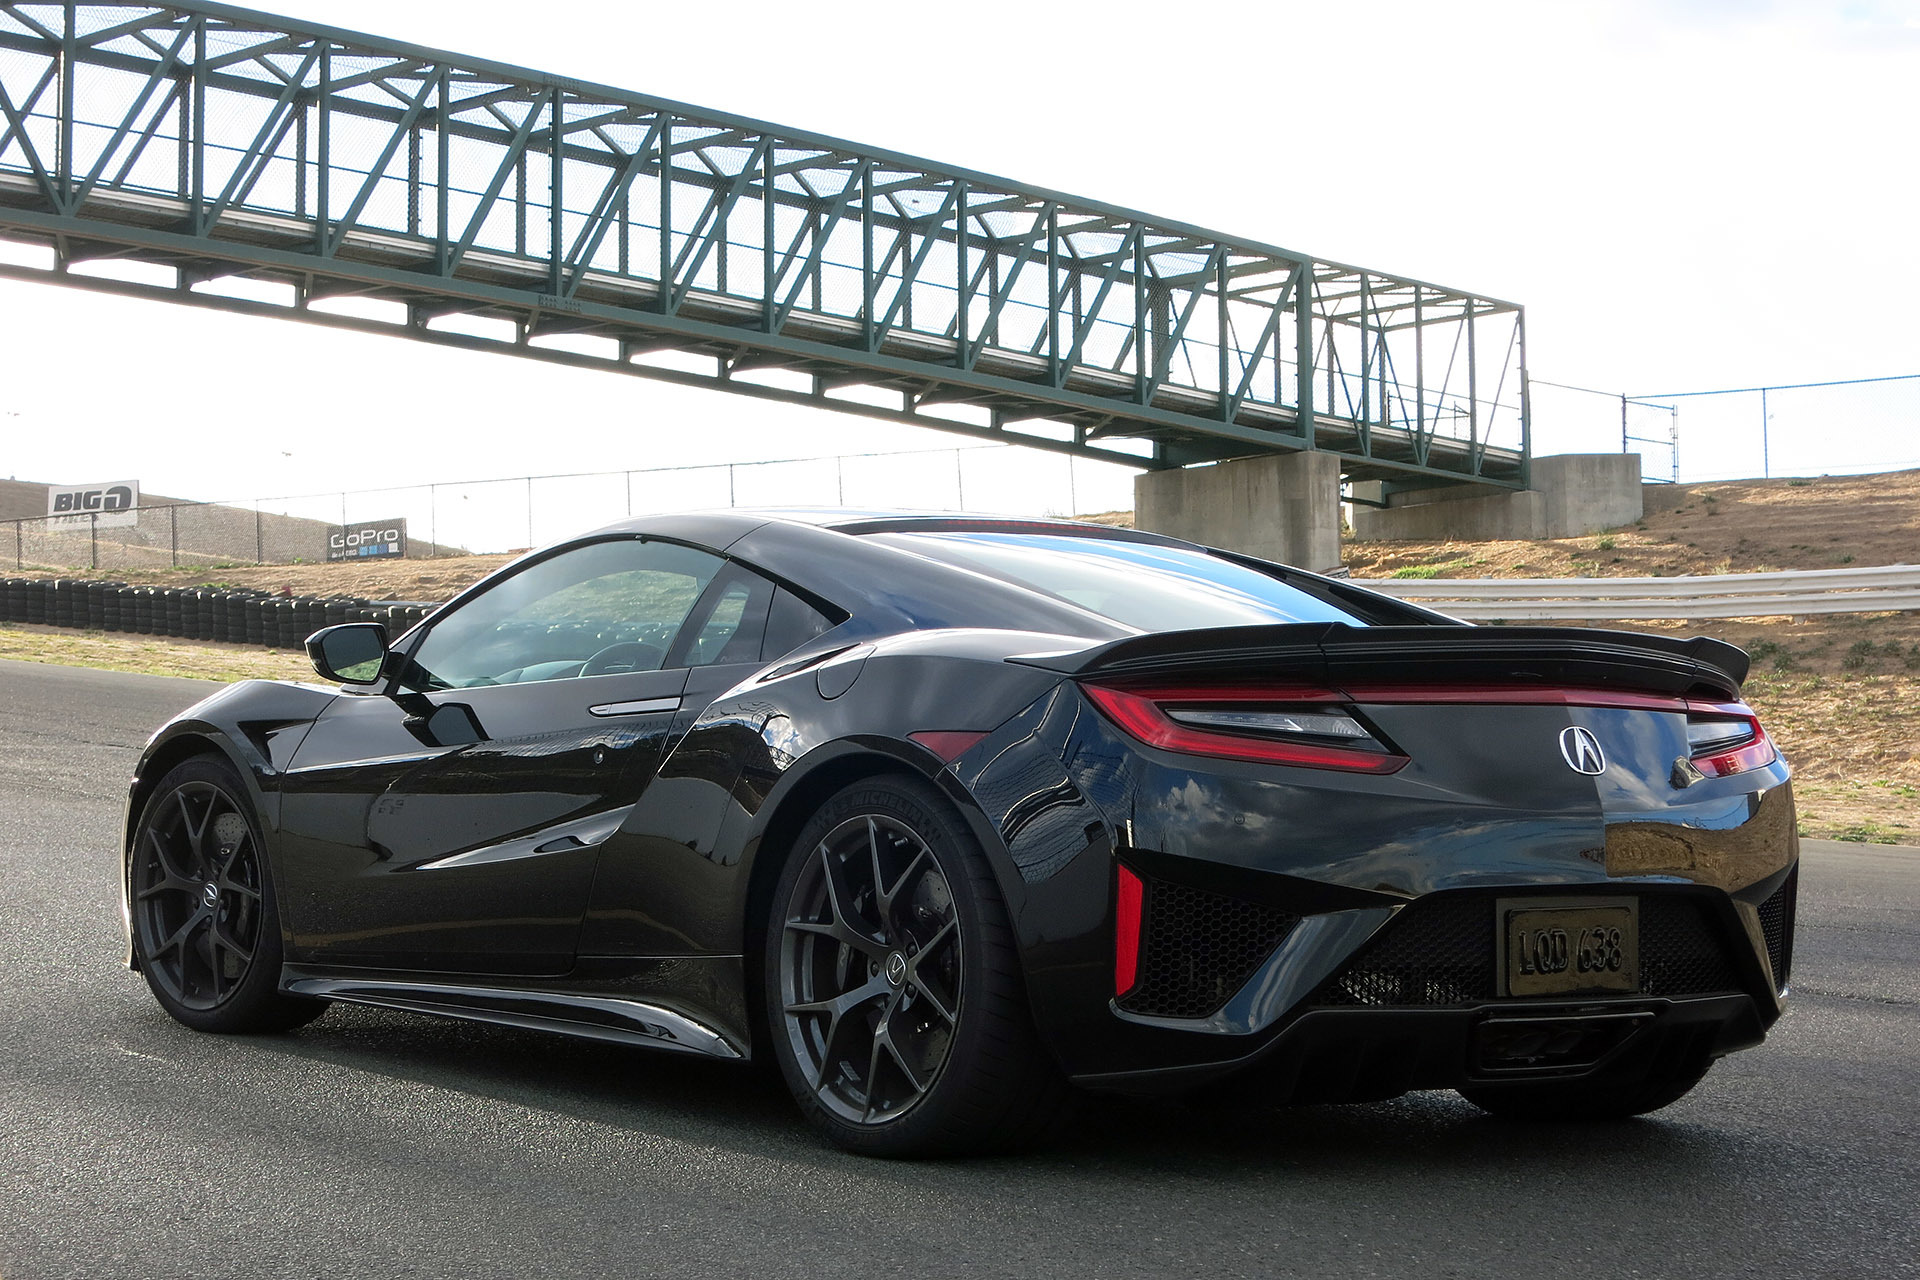 2017 Acura NSX First Drive Photo Gallery - Autoblog